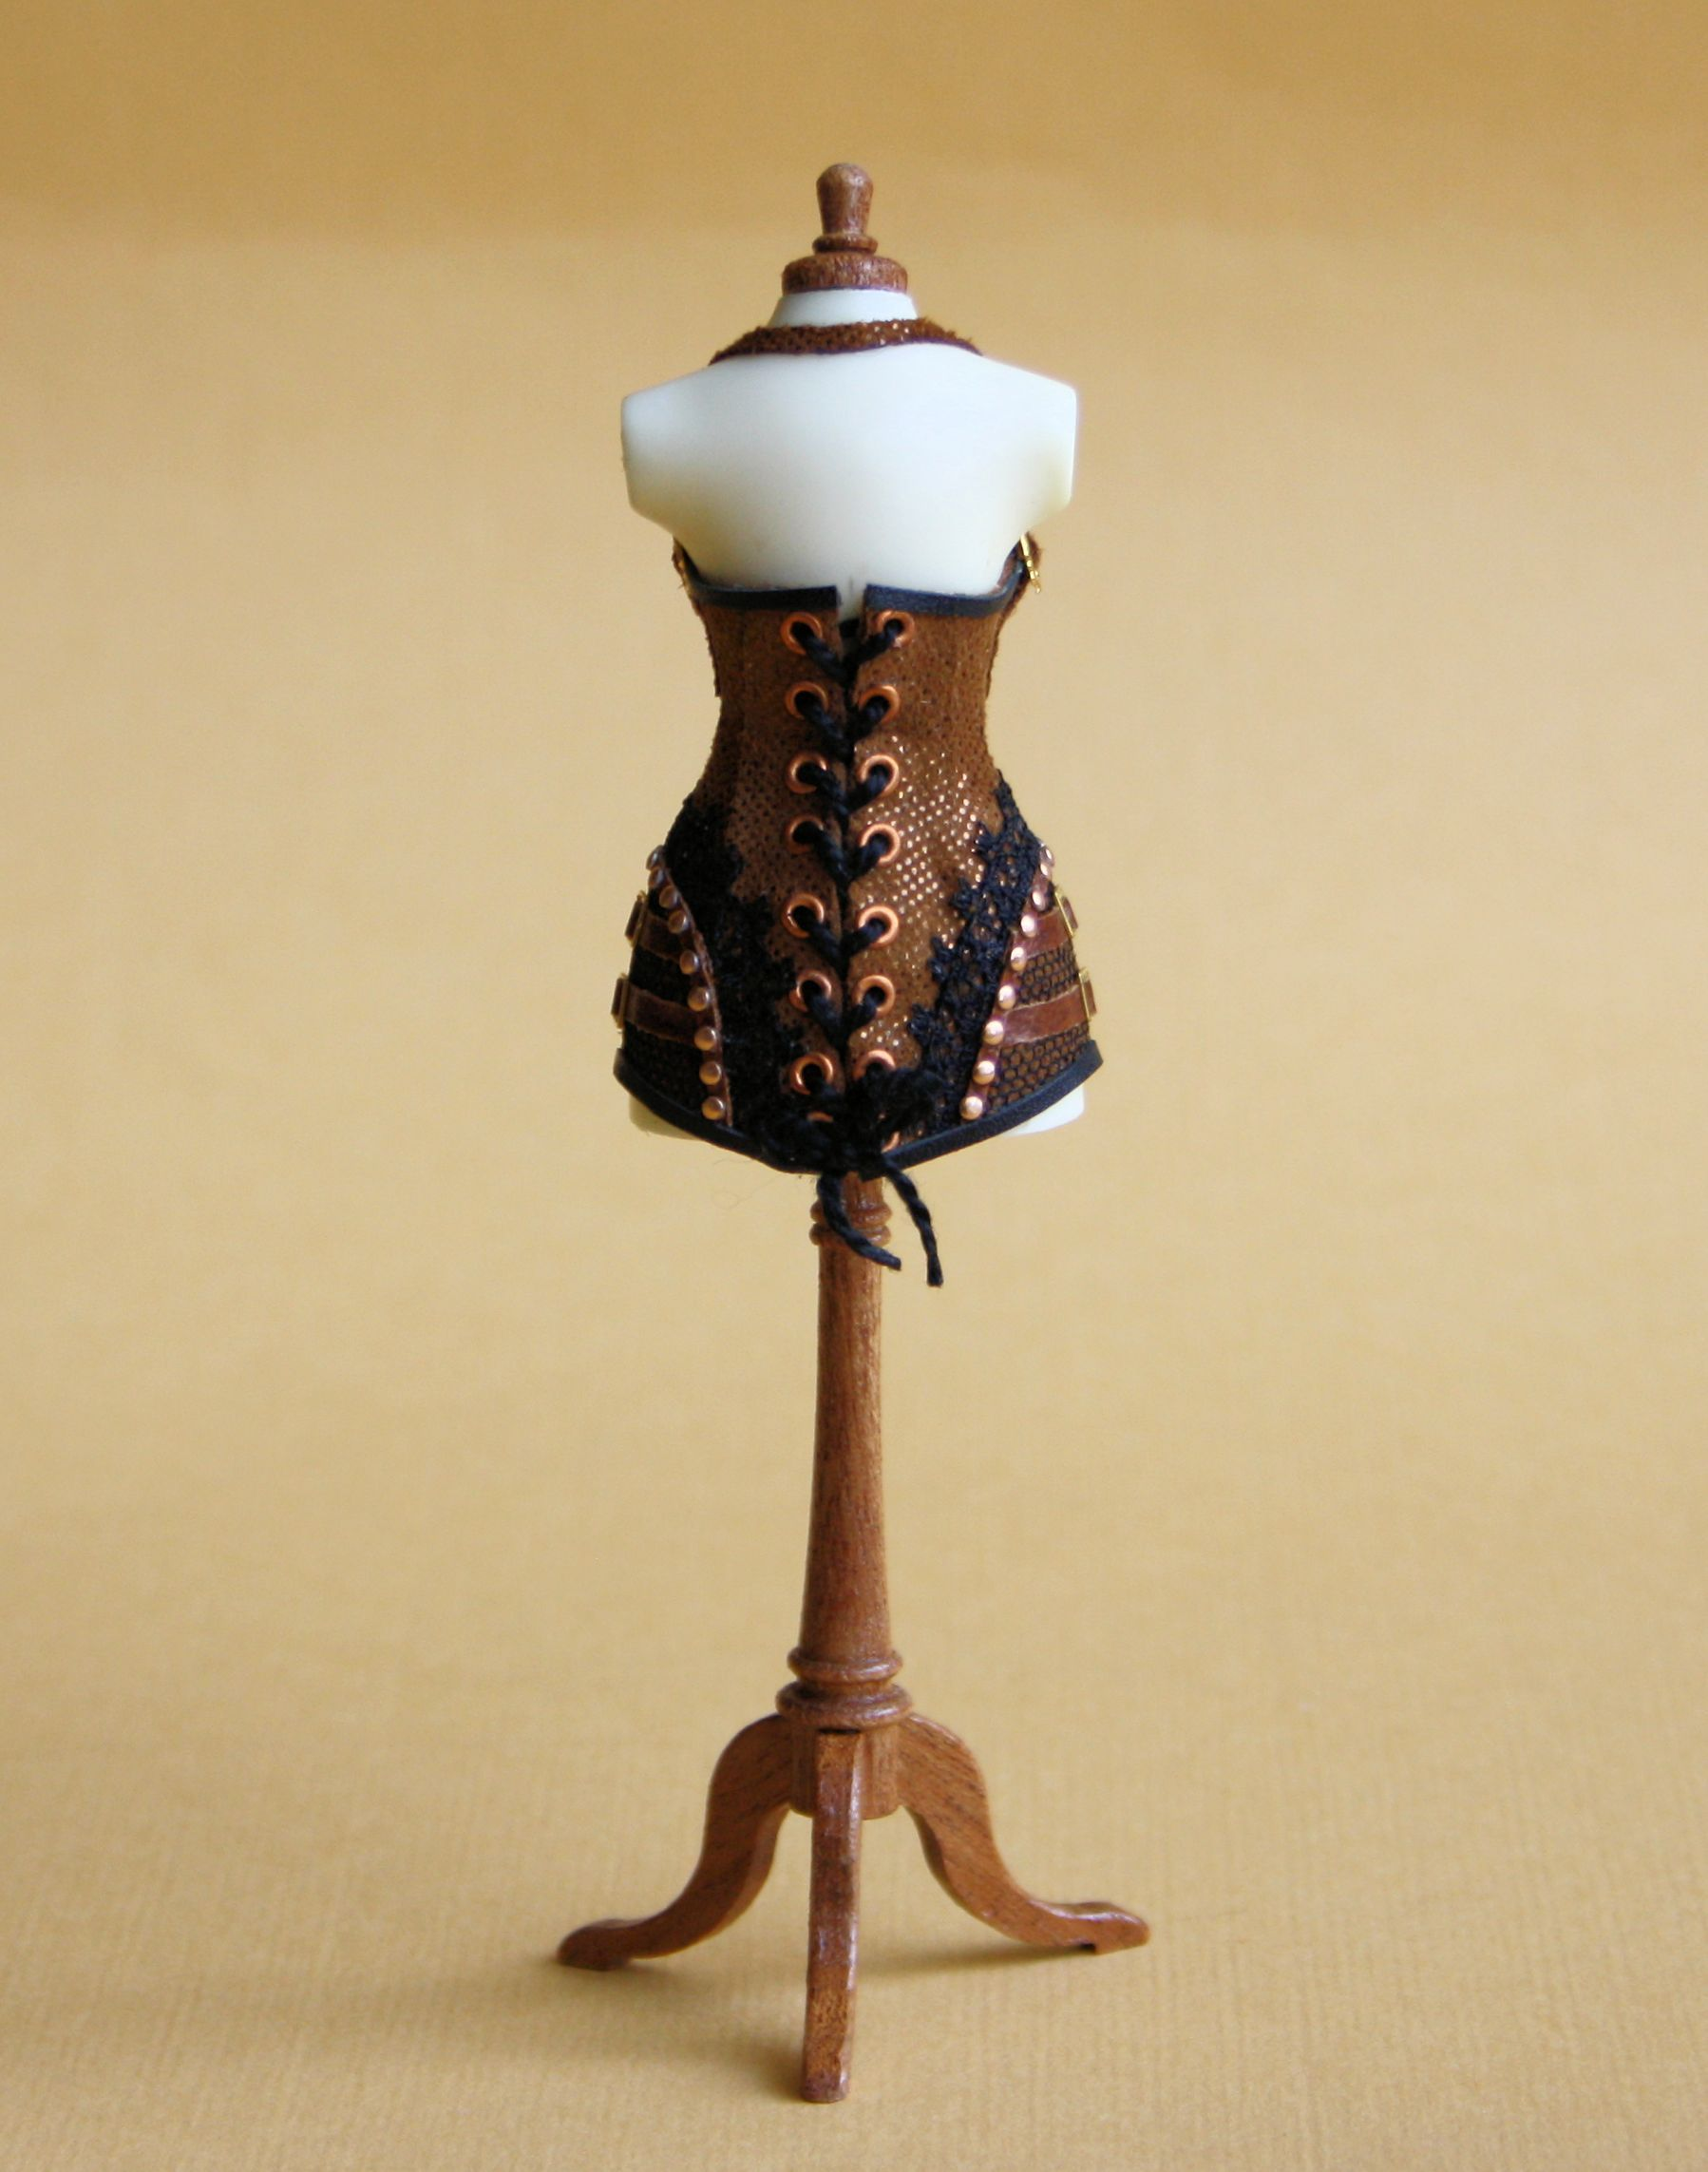 Steampunk corset, back, scale 1 : 12, suede, leather, lace and eyelets, made by Will Werson.